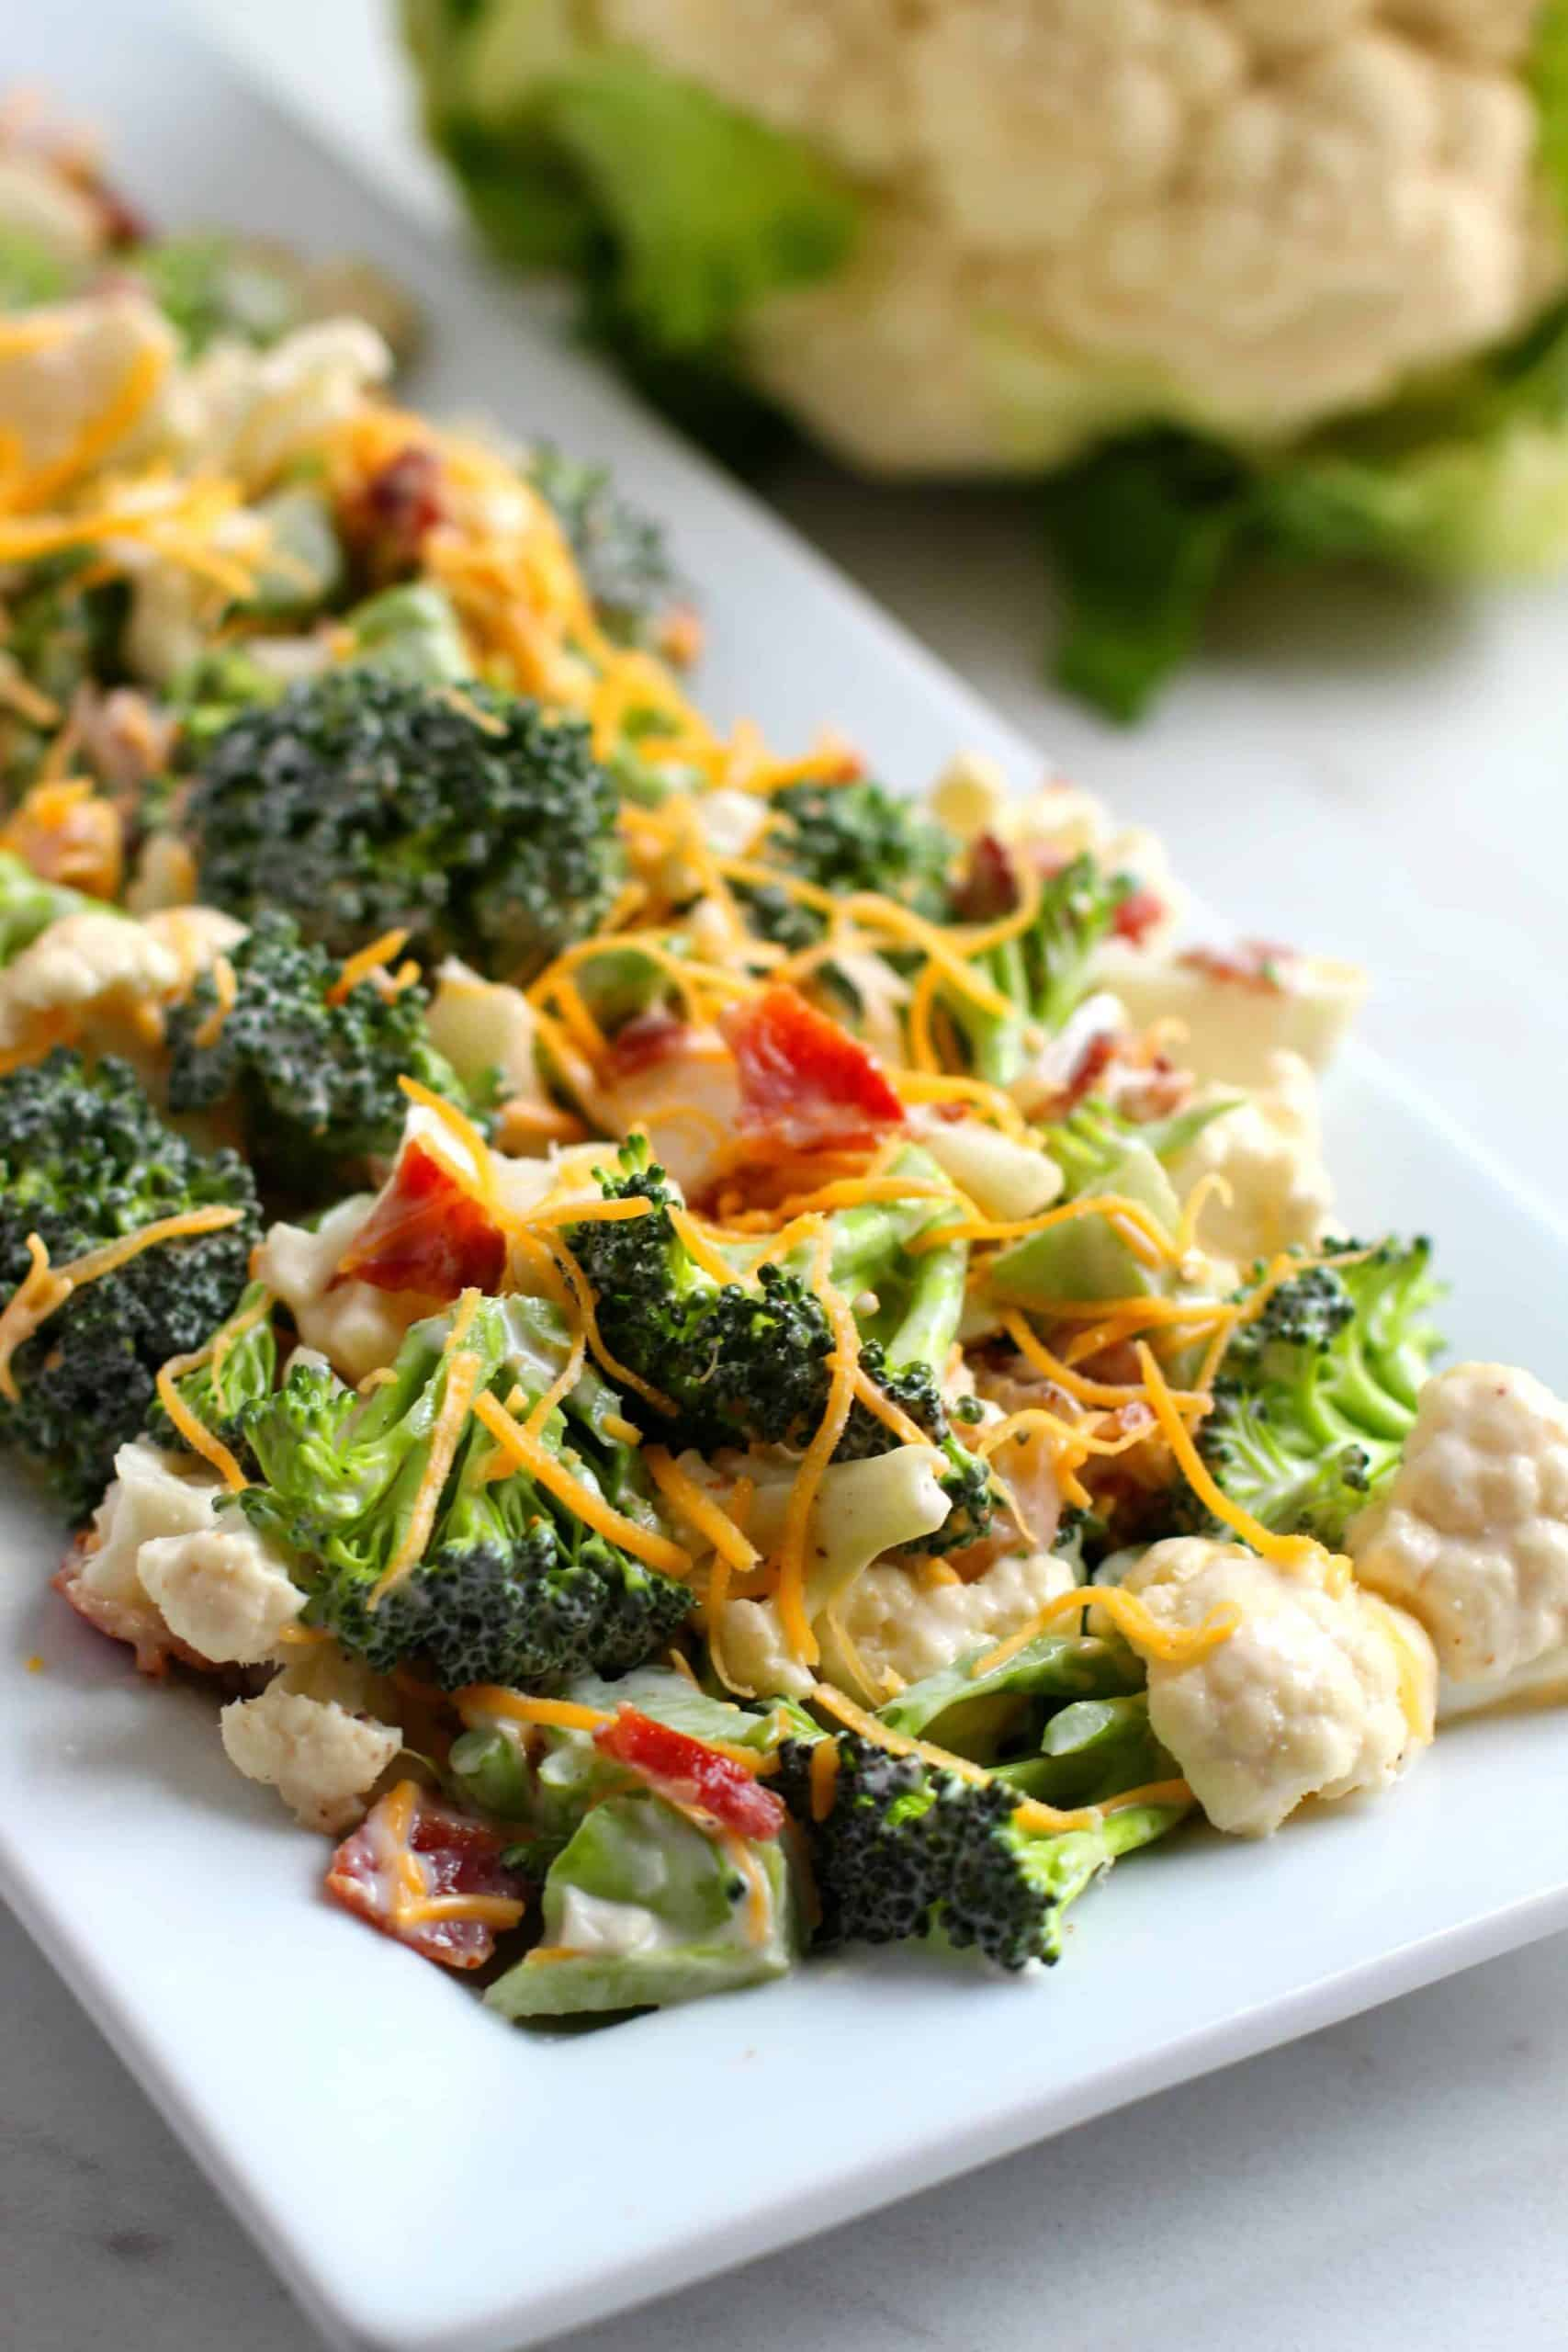 Low Carb Broccoli Cauliflower Salad Southern Plate